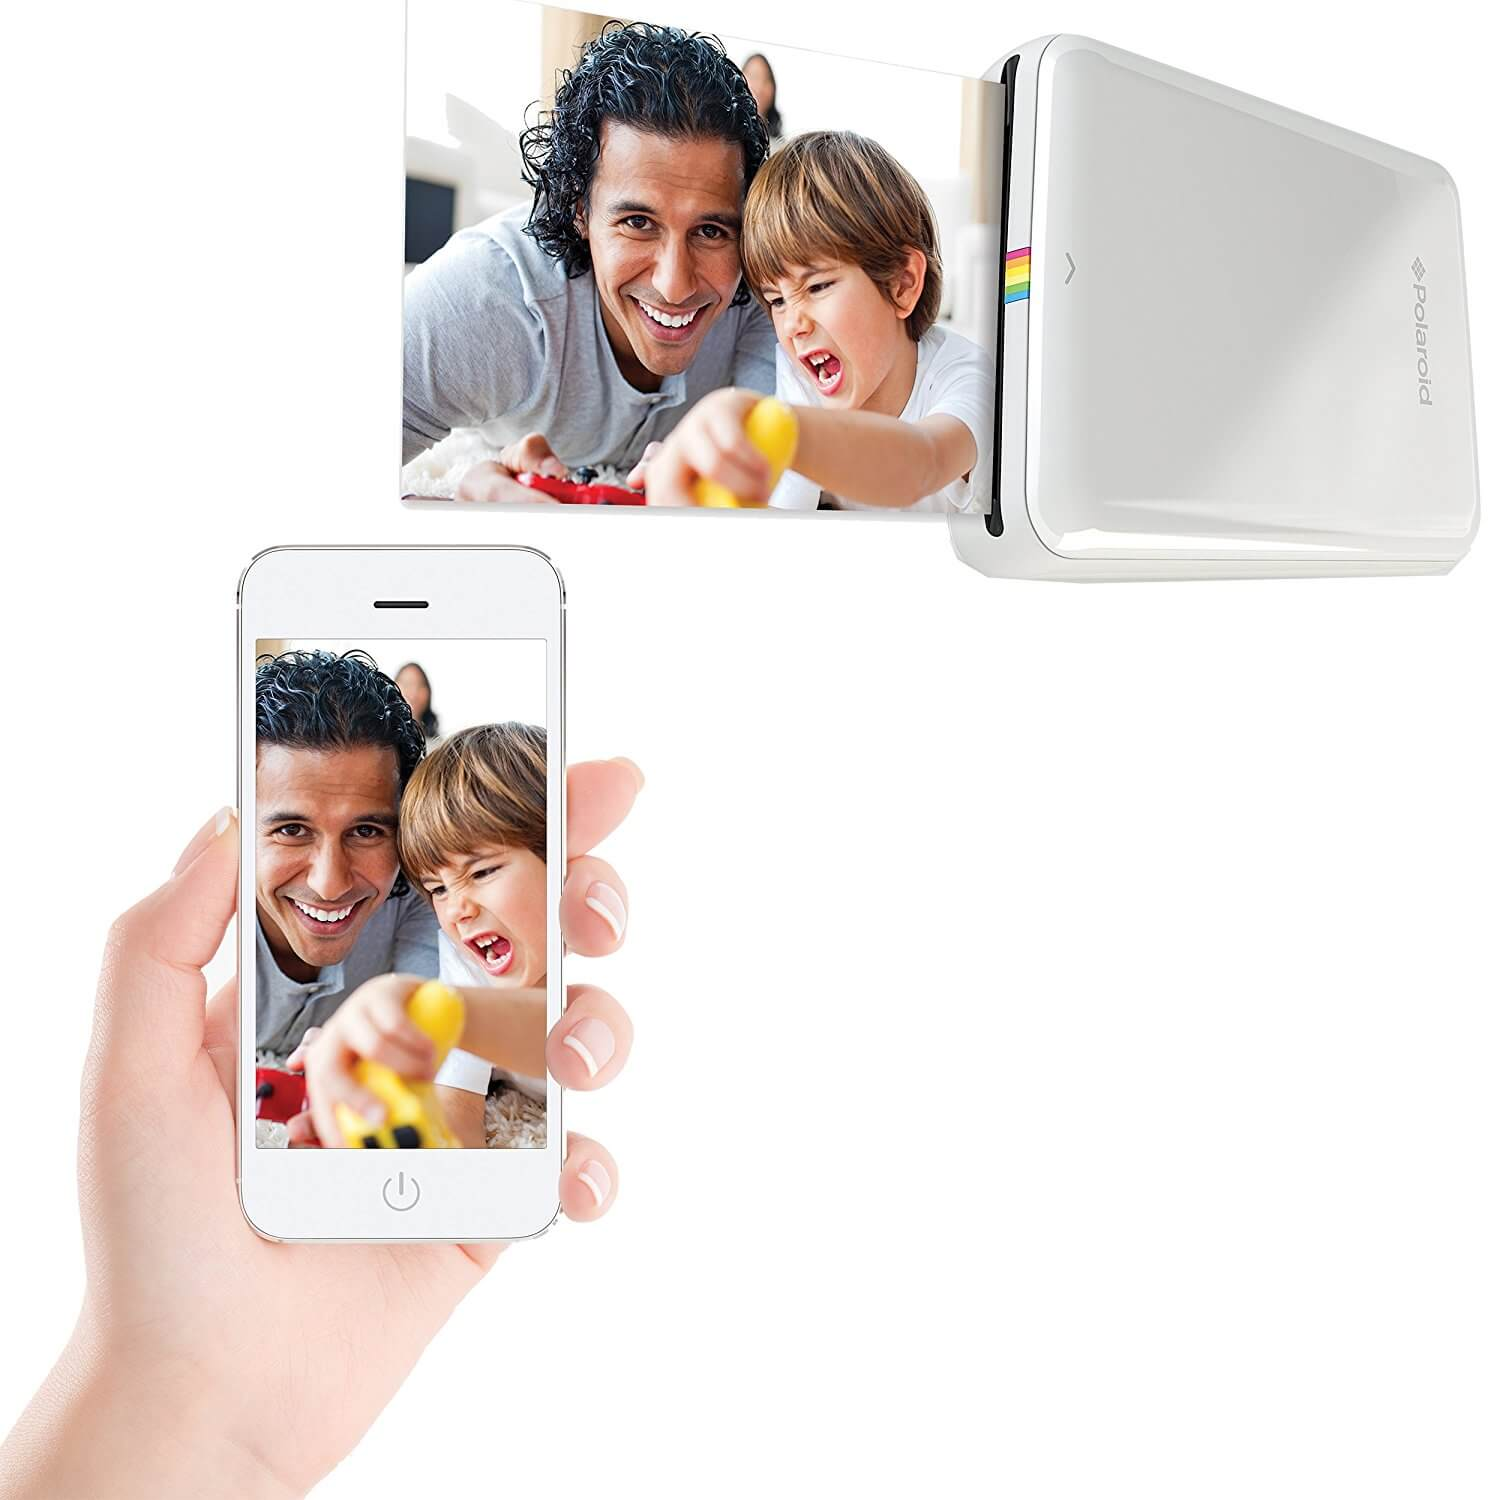 IPhone Secrets and iPad Secrets and iPod Touch Secrets Bluetooth photo printer iphone